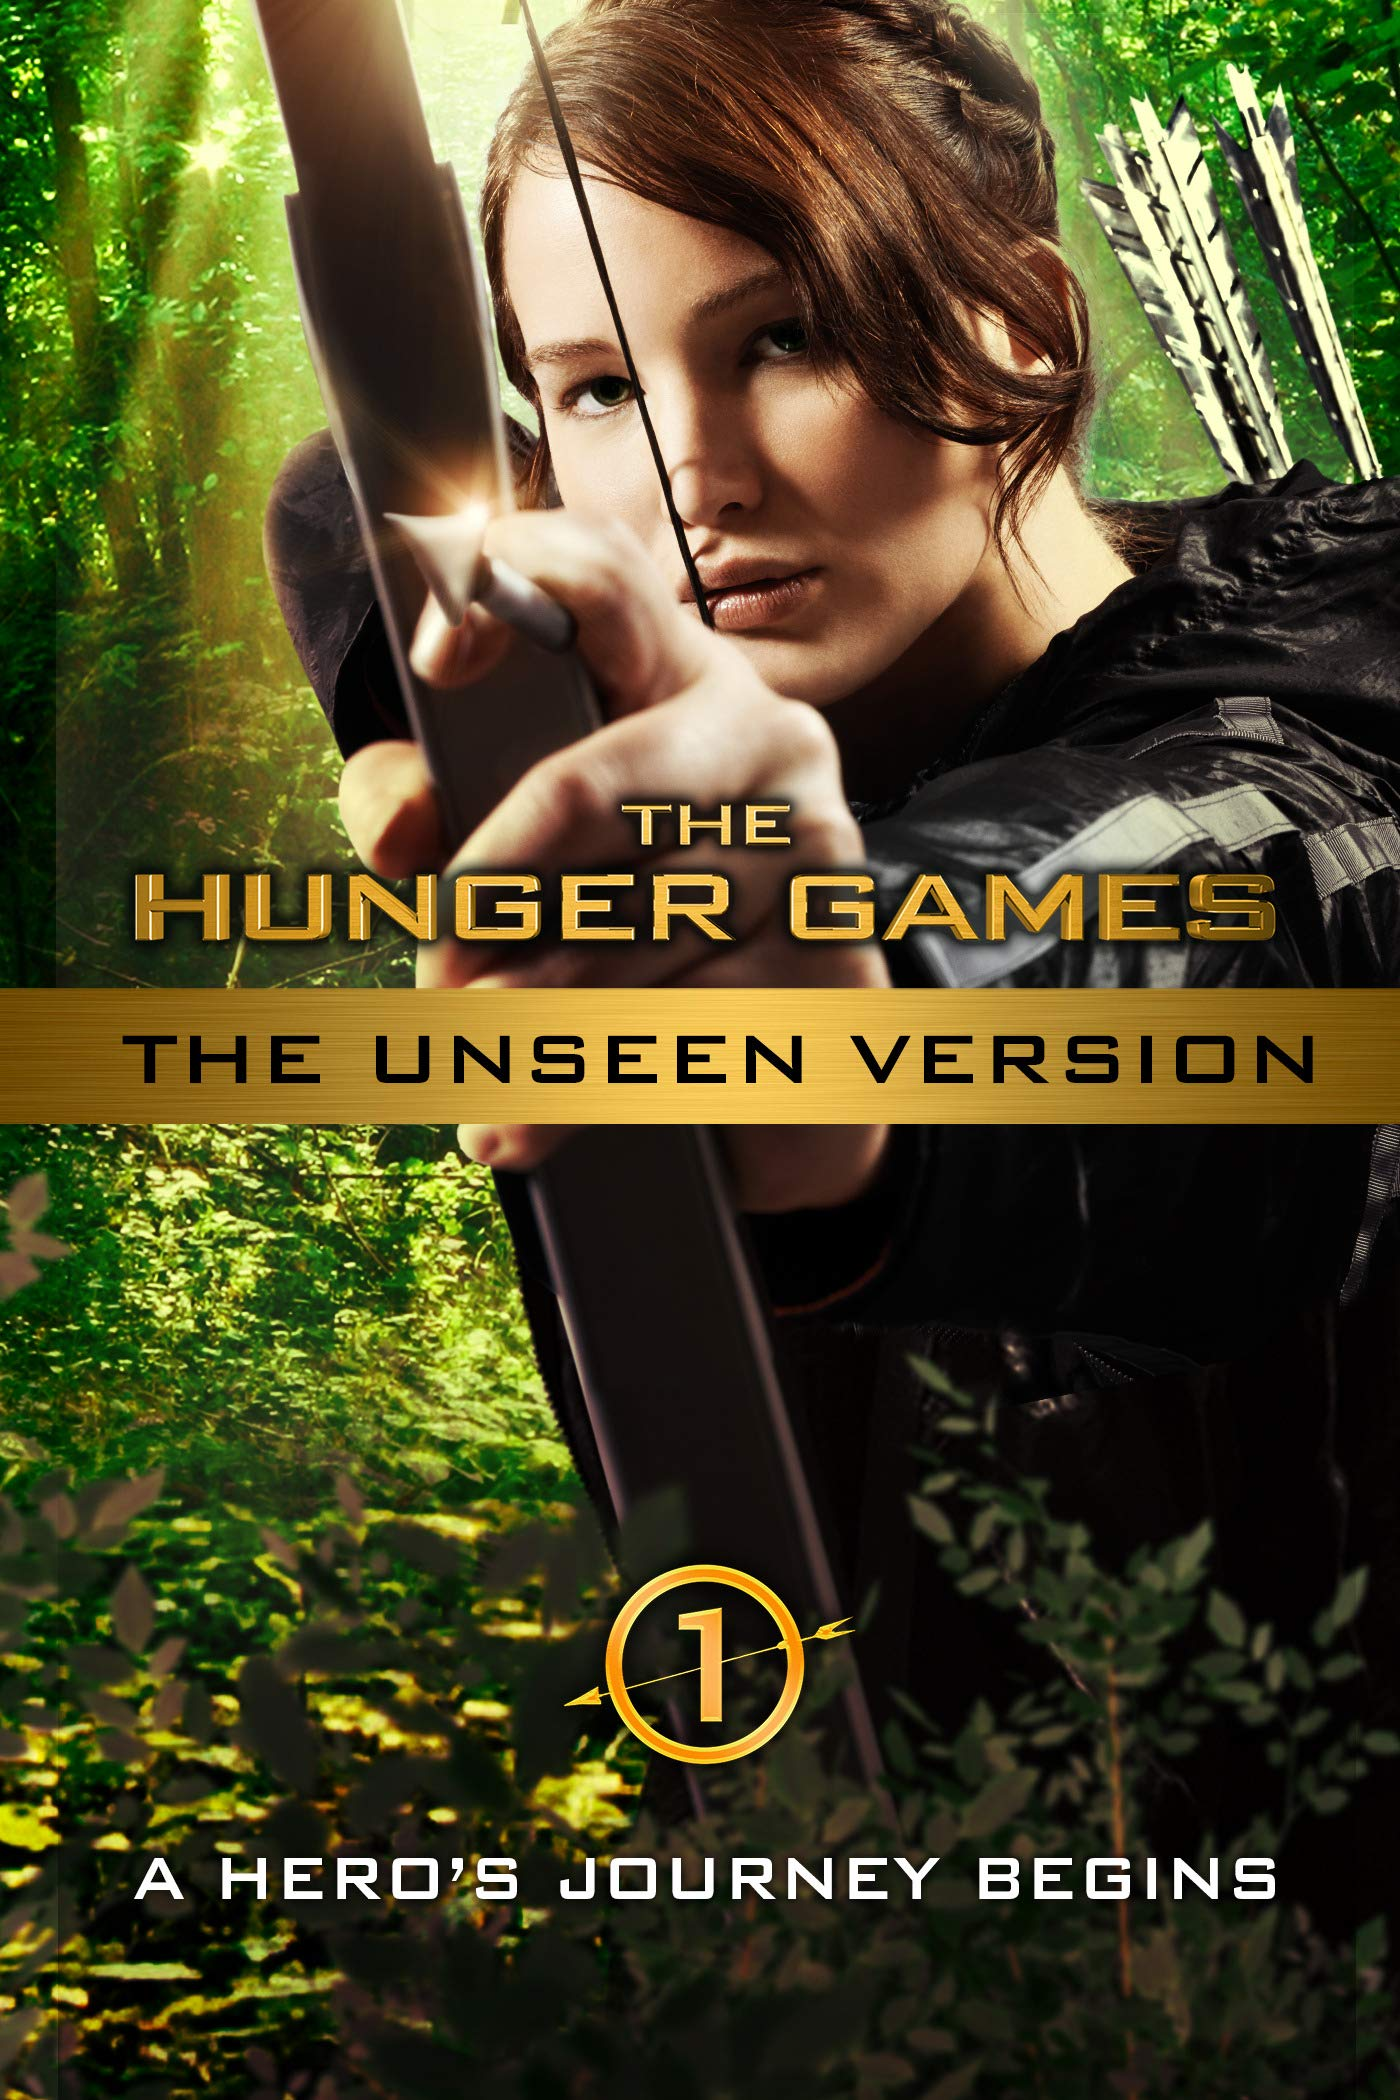 The Hunger Games Unseen Version on Amazon Prime Video UK